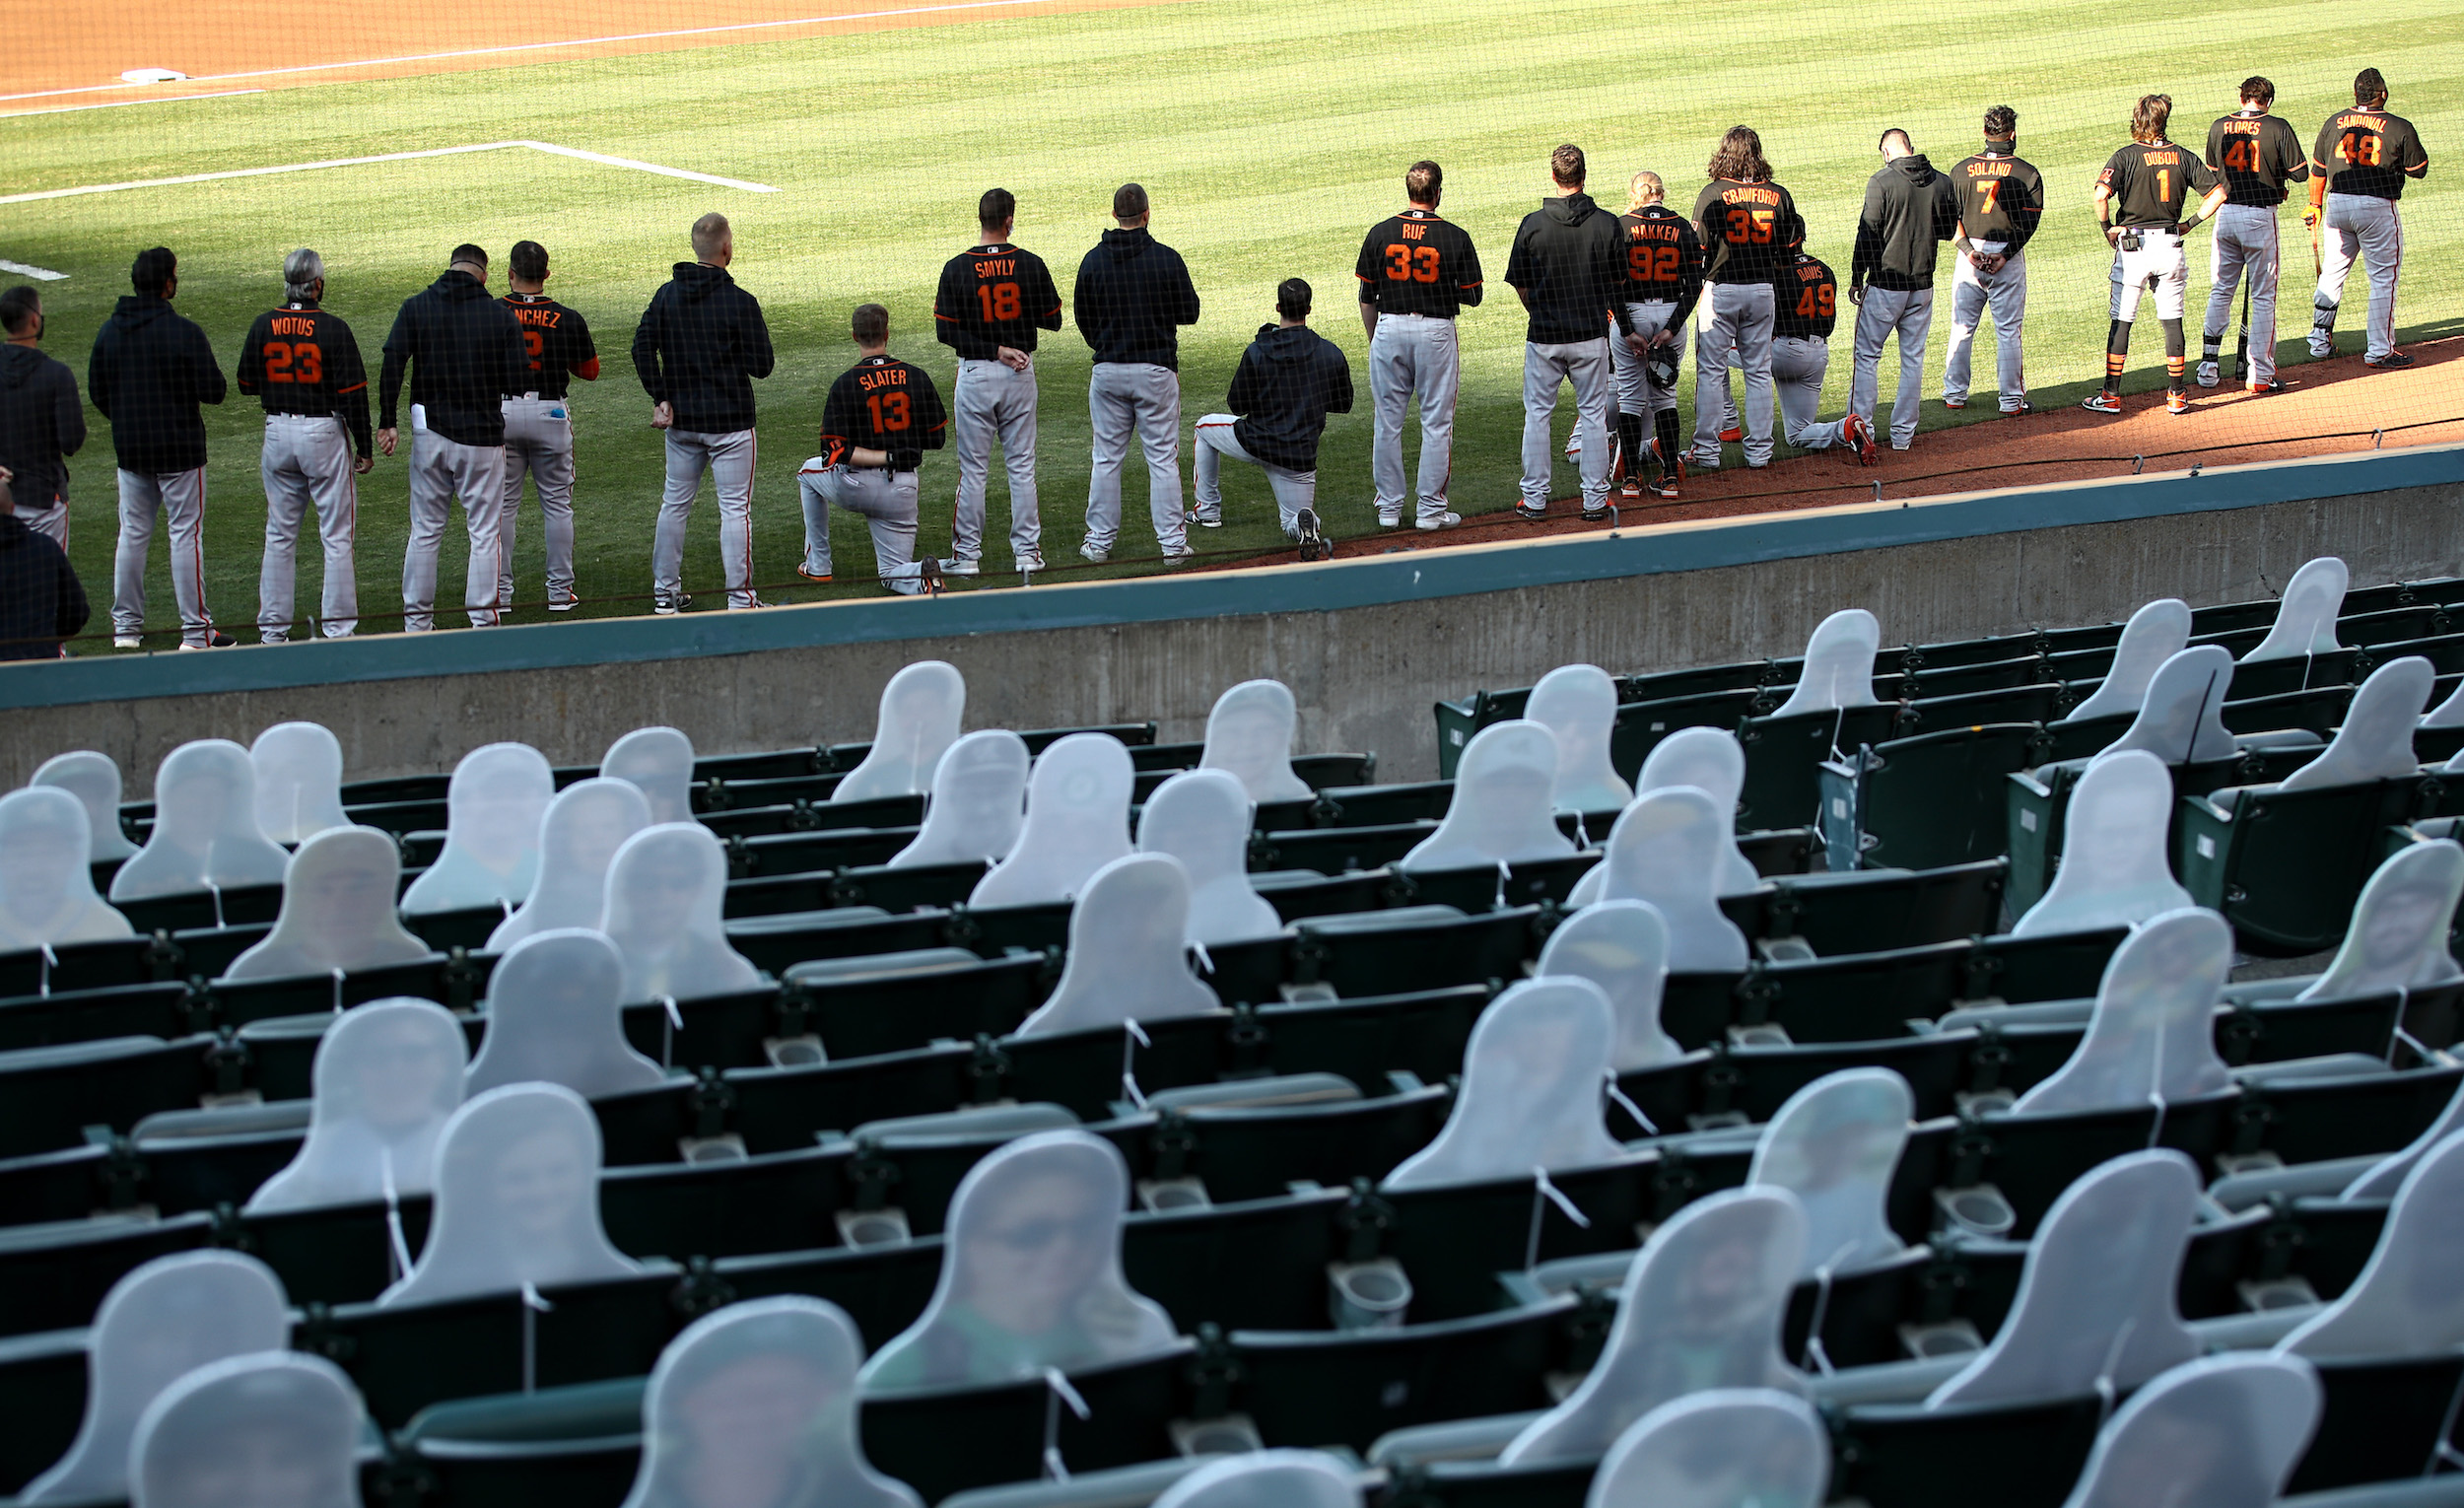 Donald Trump and Aubrey Huff blasted the San Francisco Giants for kneeling during the national anthem.